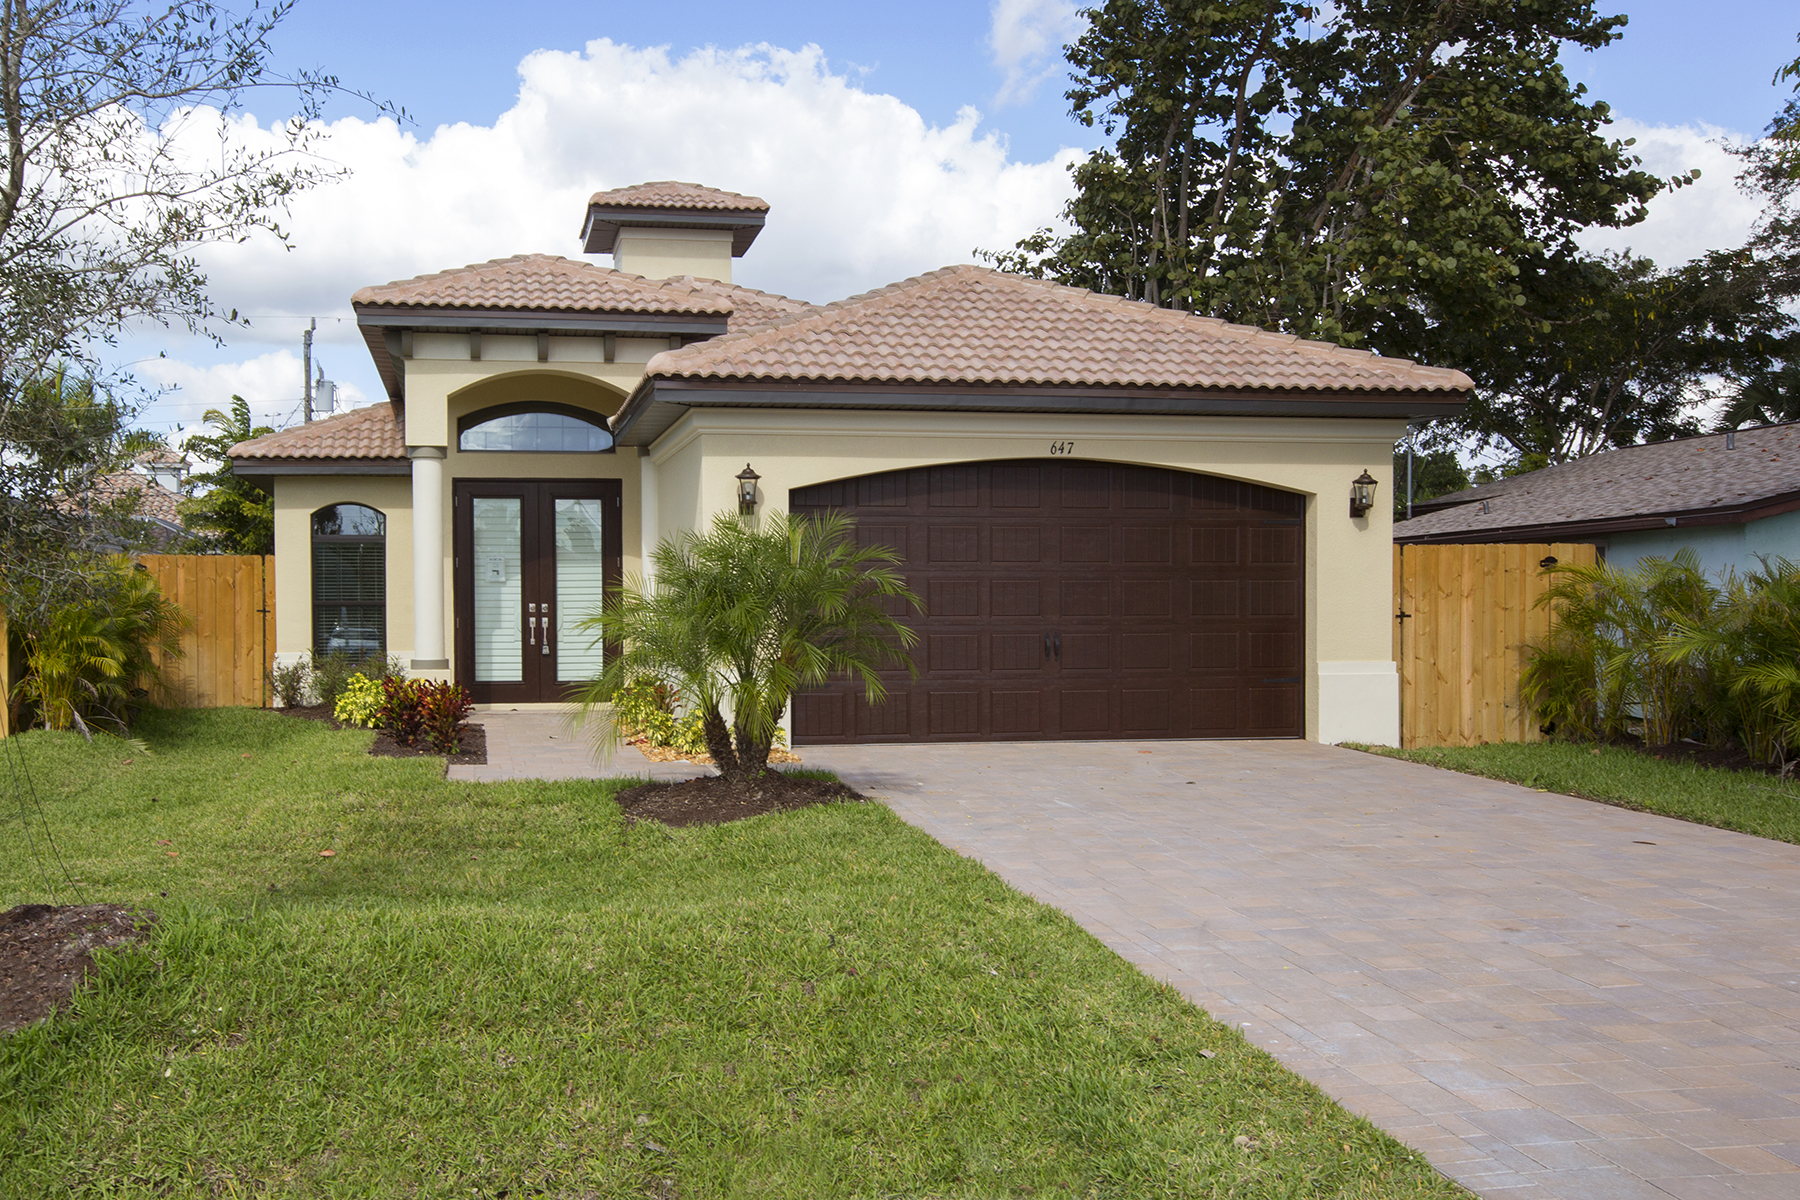 Single Family Home for Sale at NAPLES PARK 647 108th Ave N, Naples, Florida 34108 United States